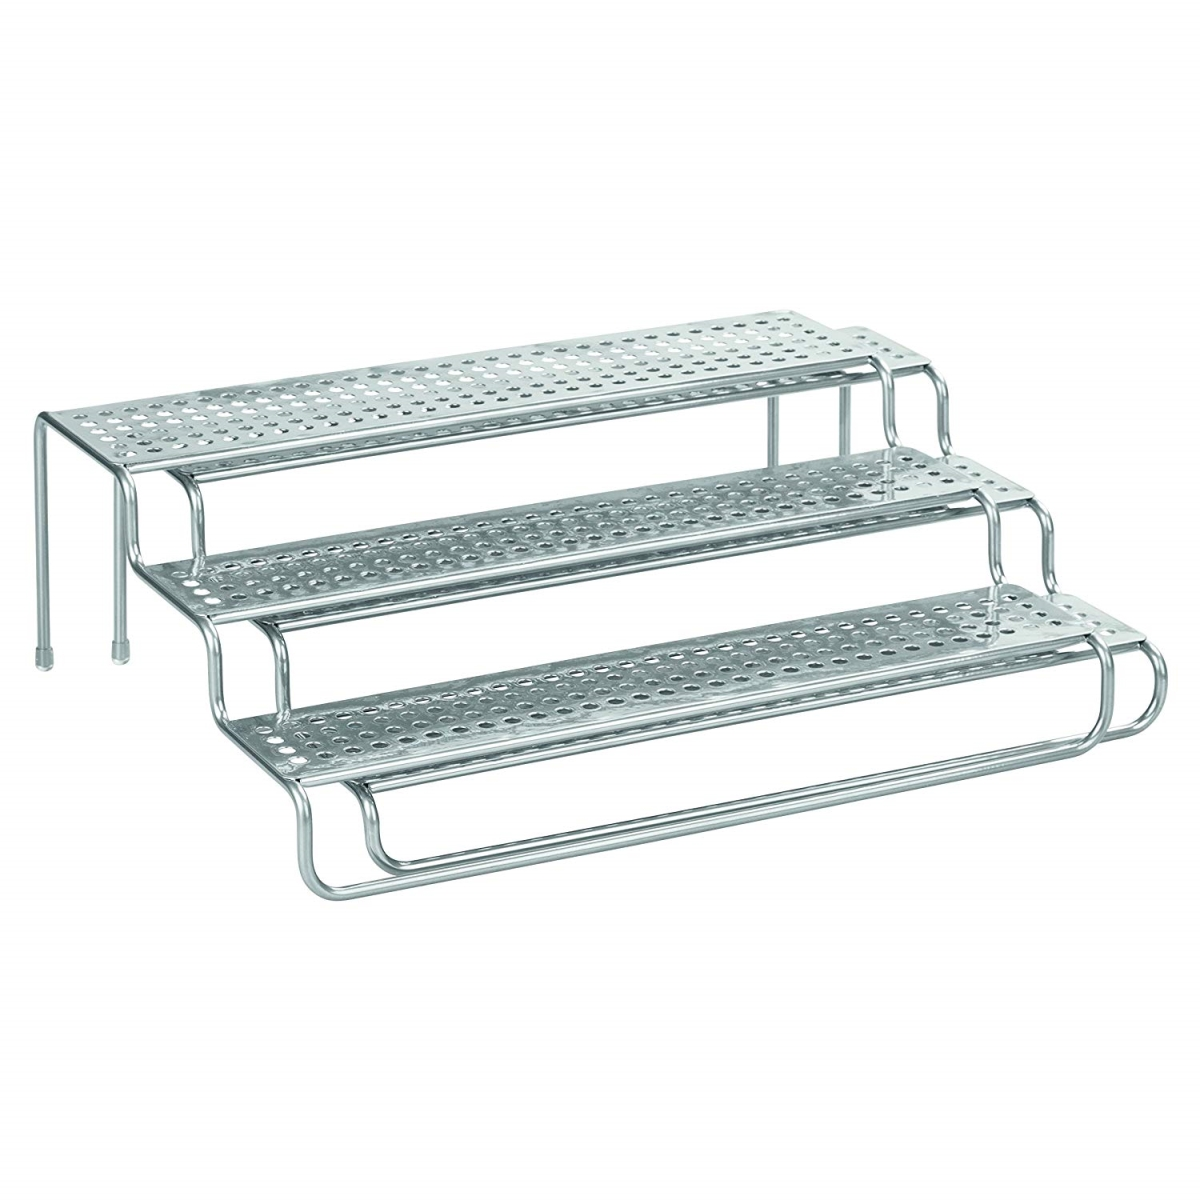 InterDesign 48876 Classico Expandable Spice Rack - Silver